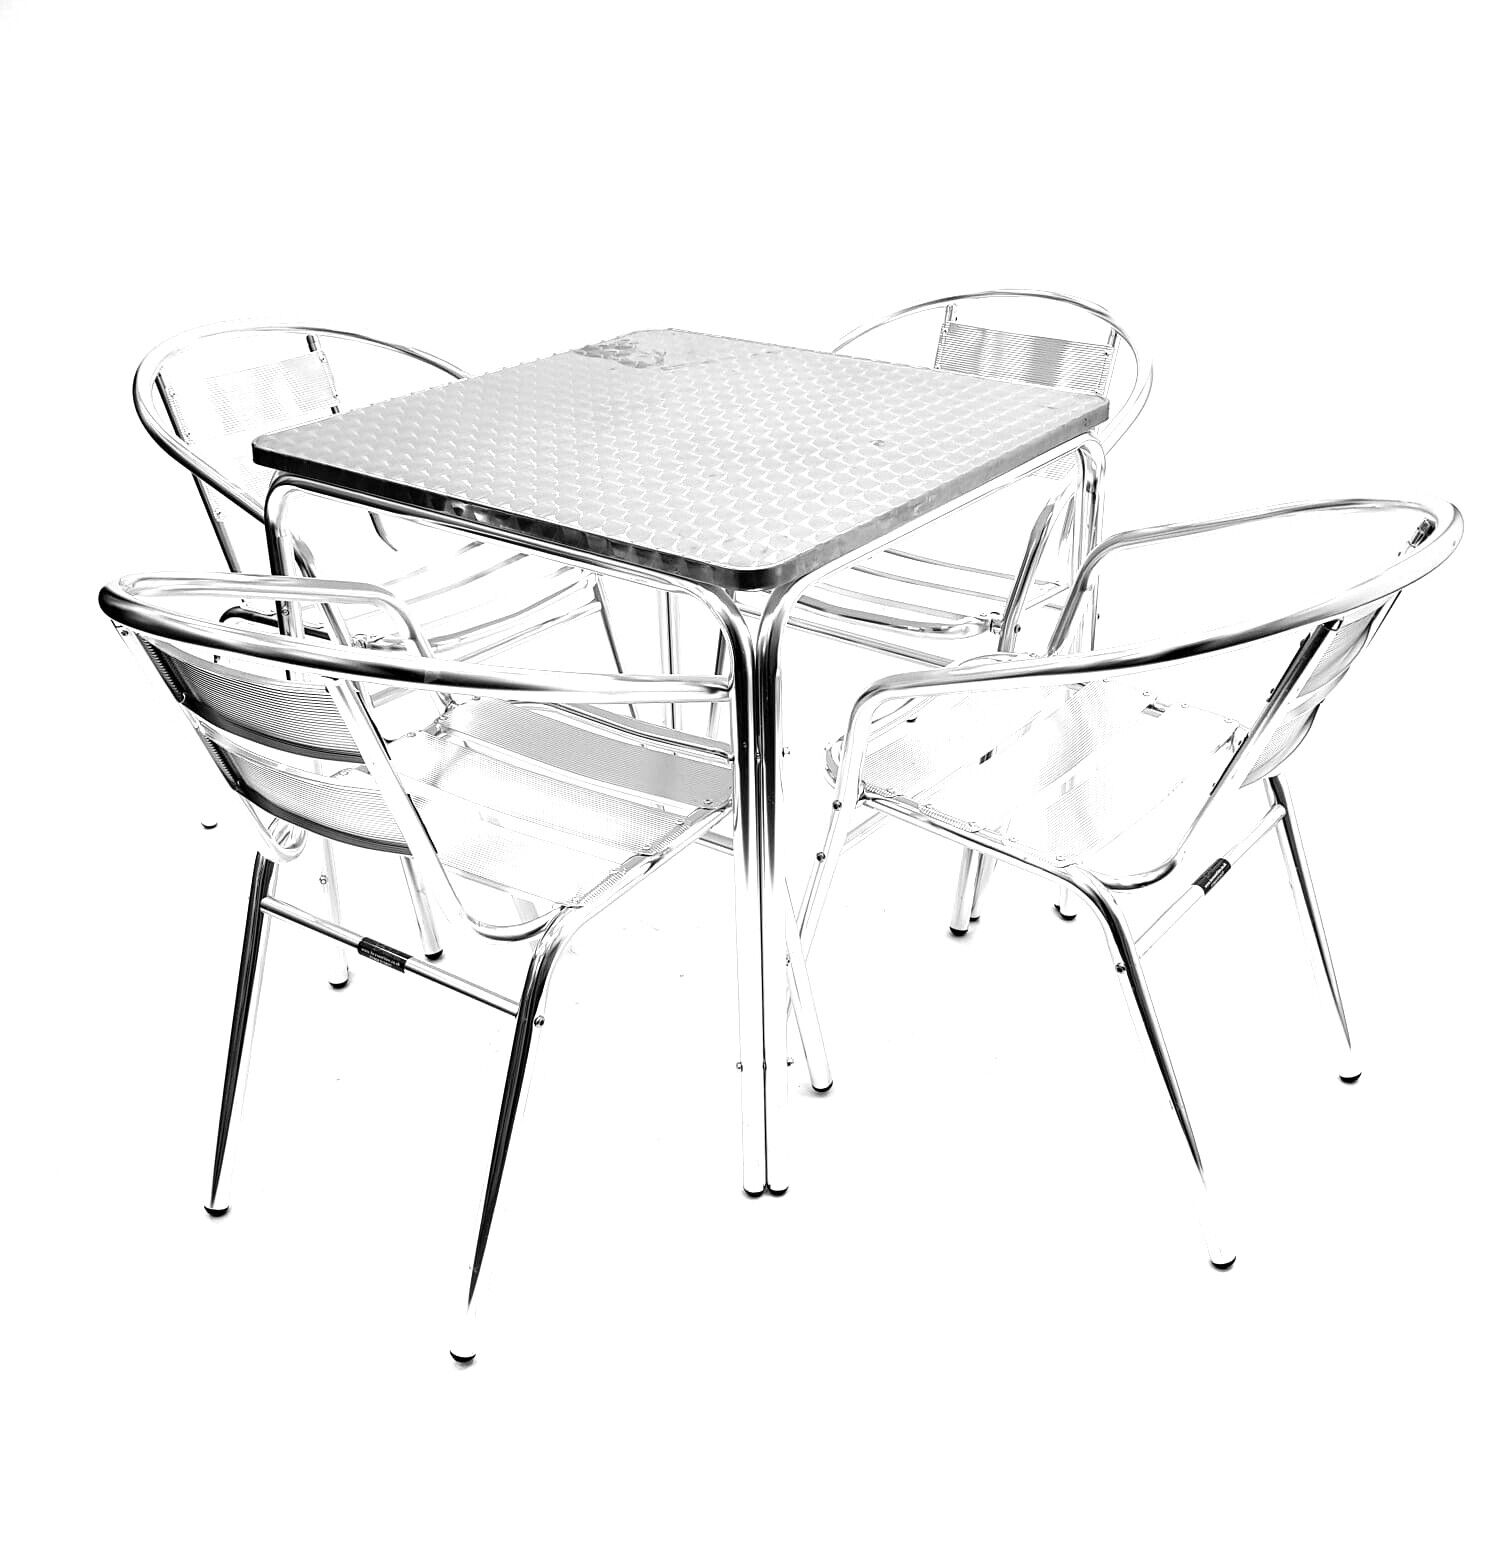 Garden Furniture - Garden Furniture 4 x ALUMINIUM Chairs & SQUARE Table SET ,Patio Sets, Decking